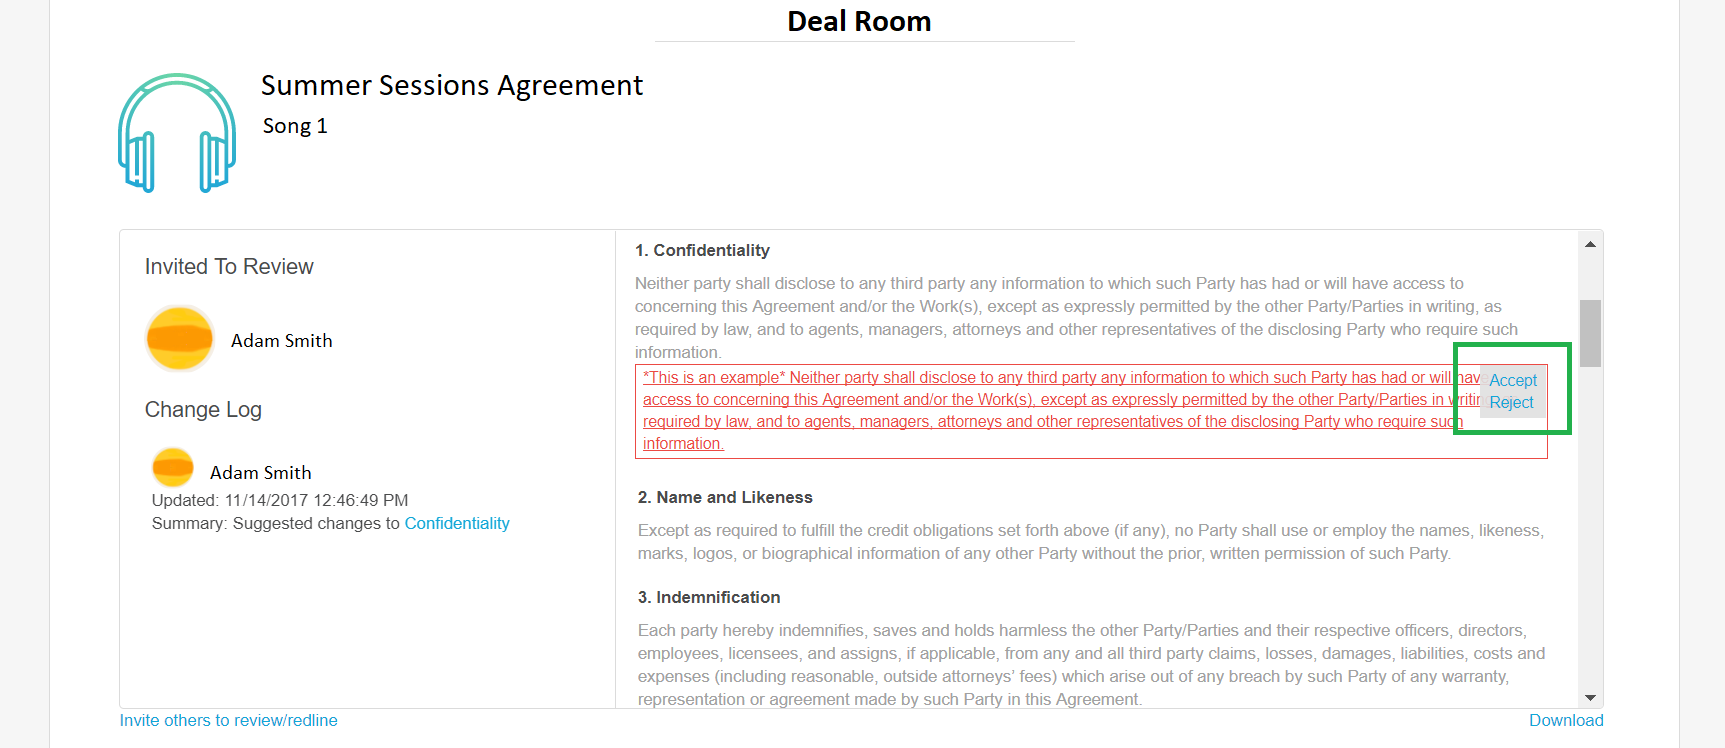 How Do I Accept A Change To The Text Of The Agreement Redline